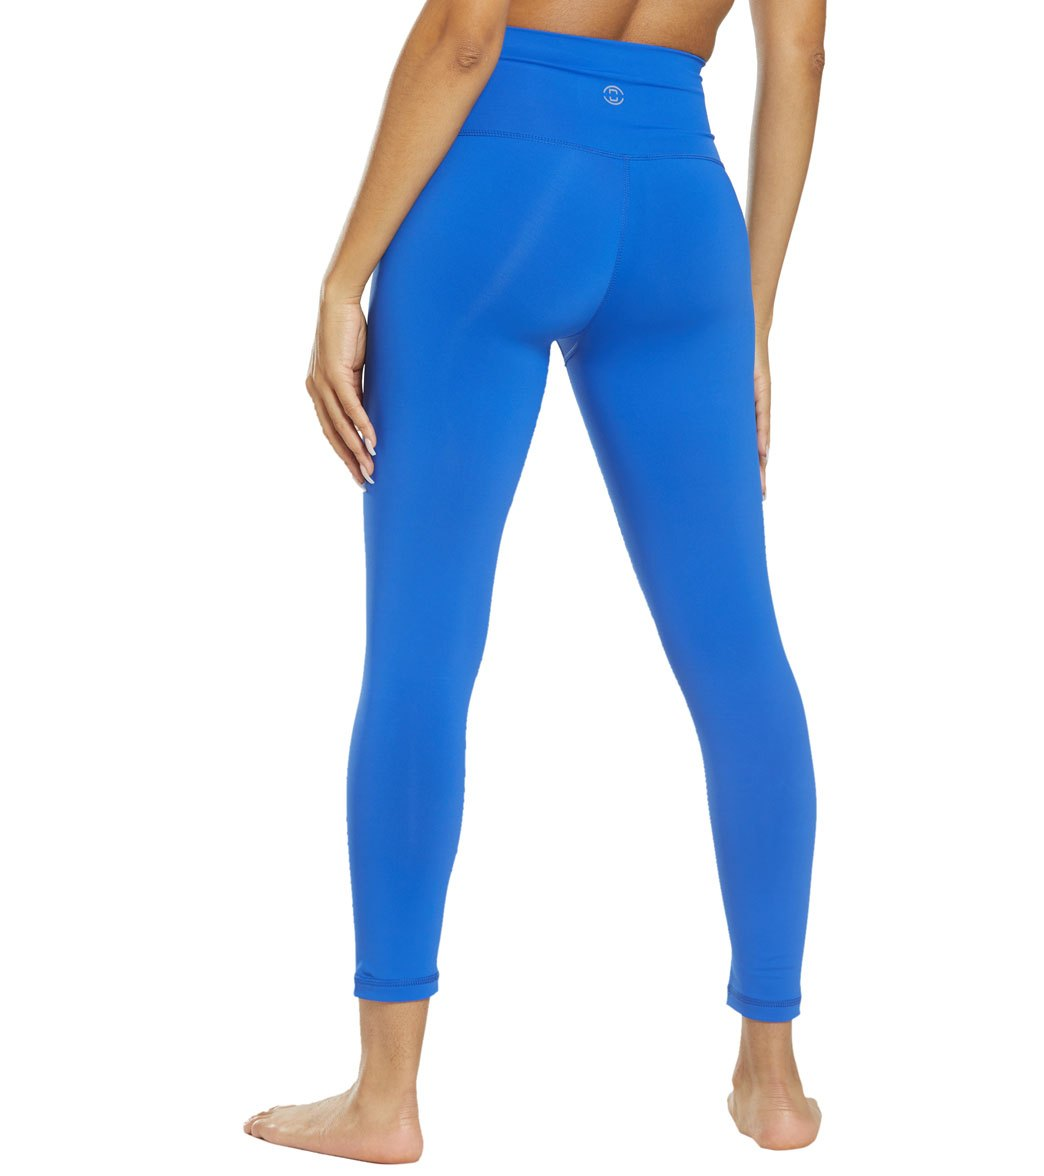 e19c60d521 DYI Take Control High Waisted 7/8 Yoga Leggings at YogaOutlet.com ...